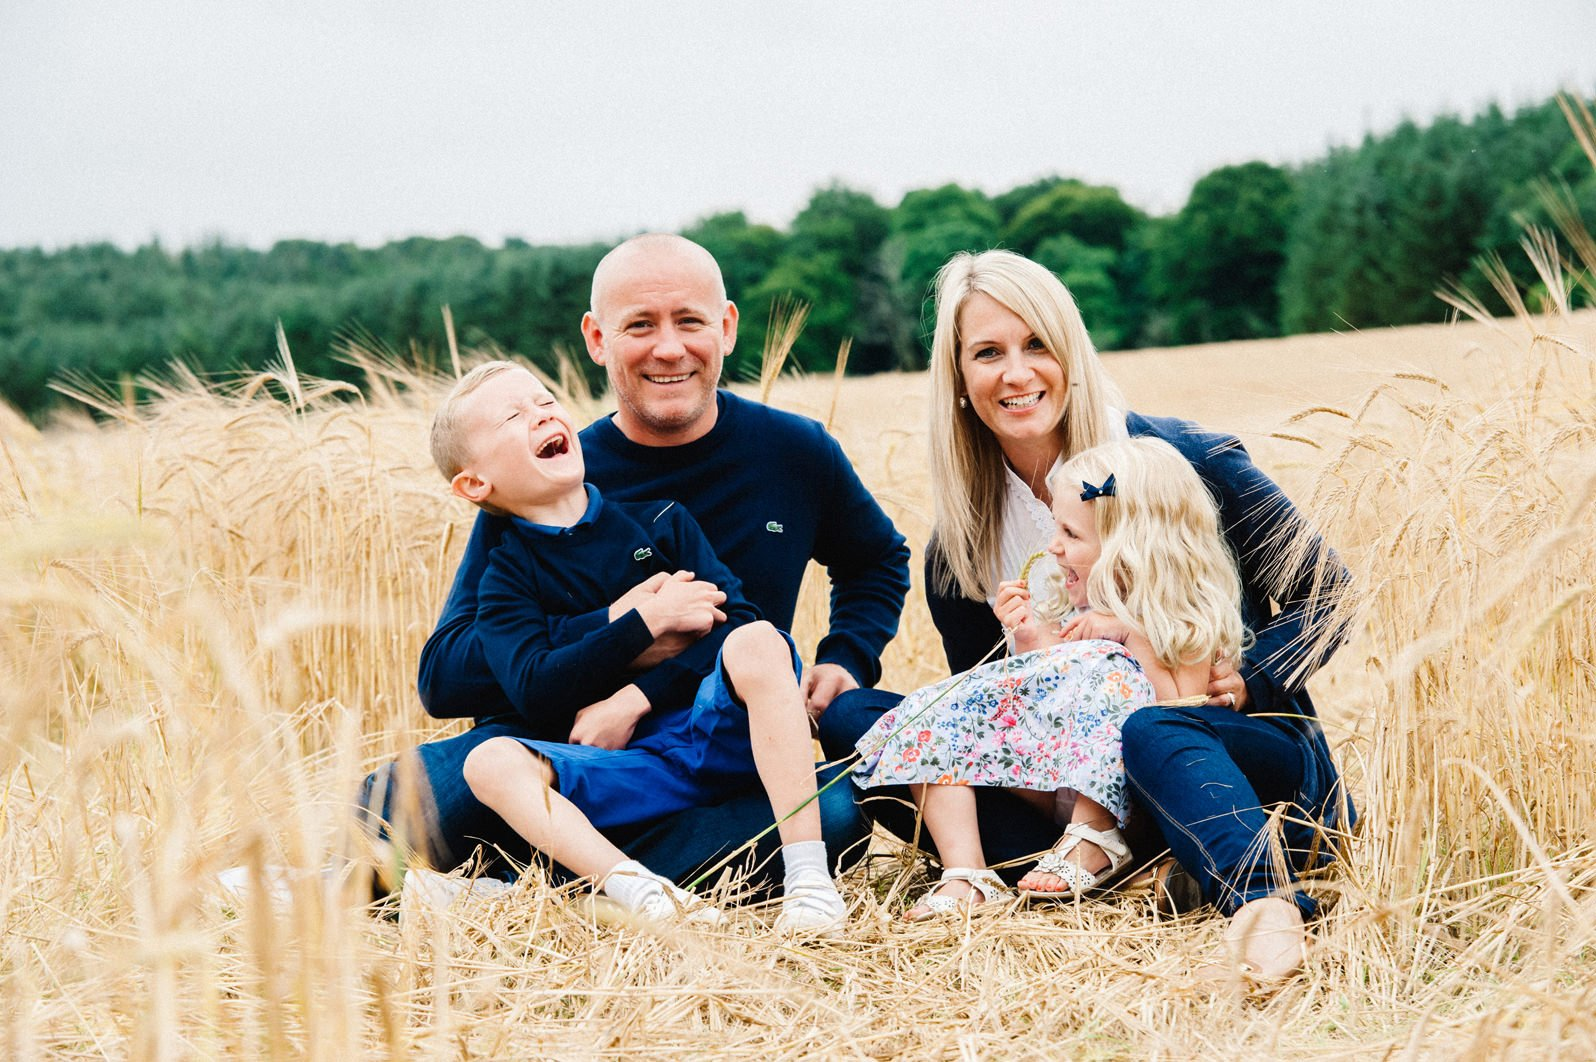 Aberdeen photographers; family photo shoots;